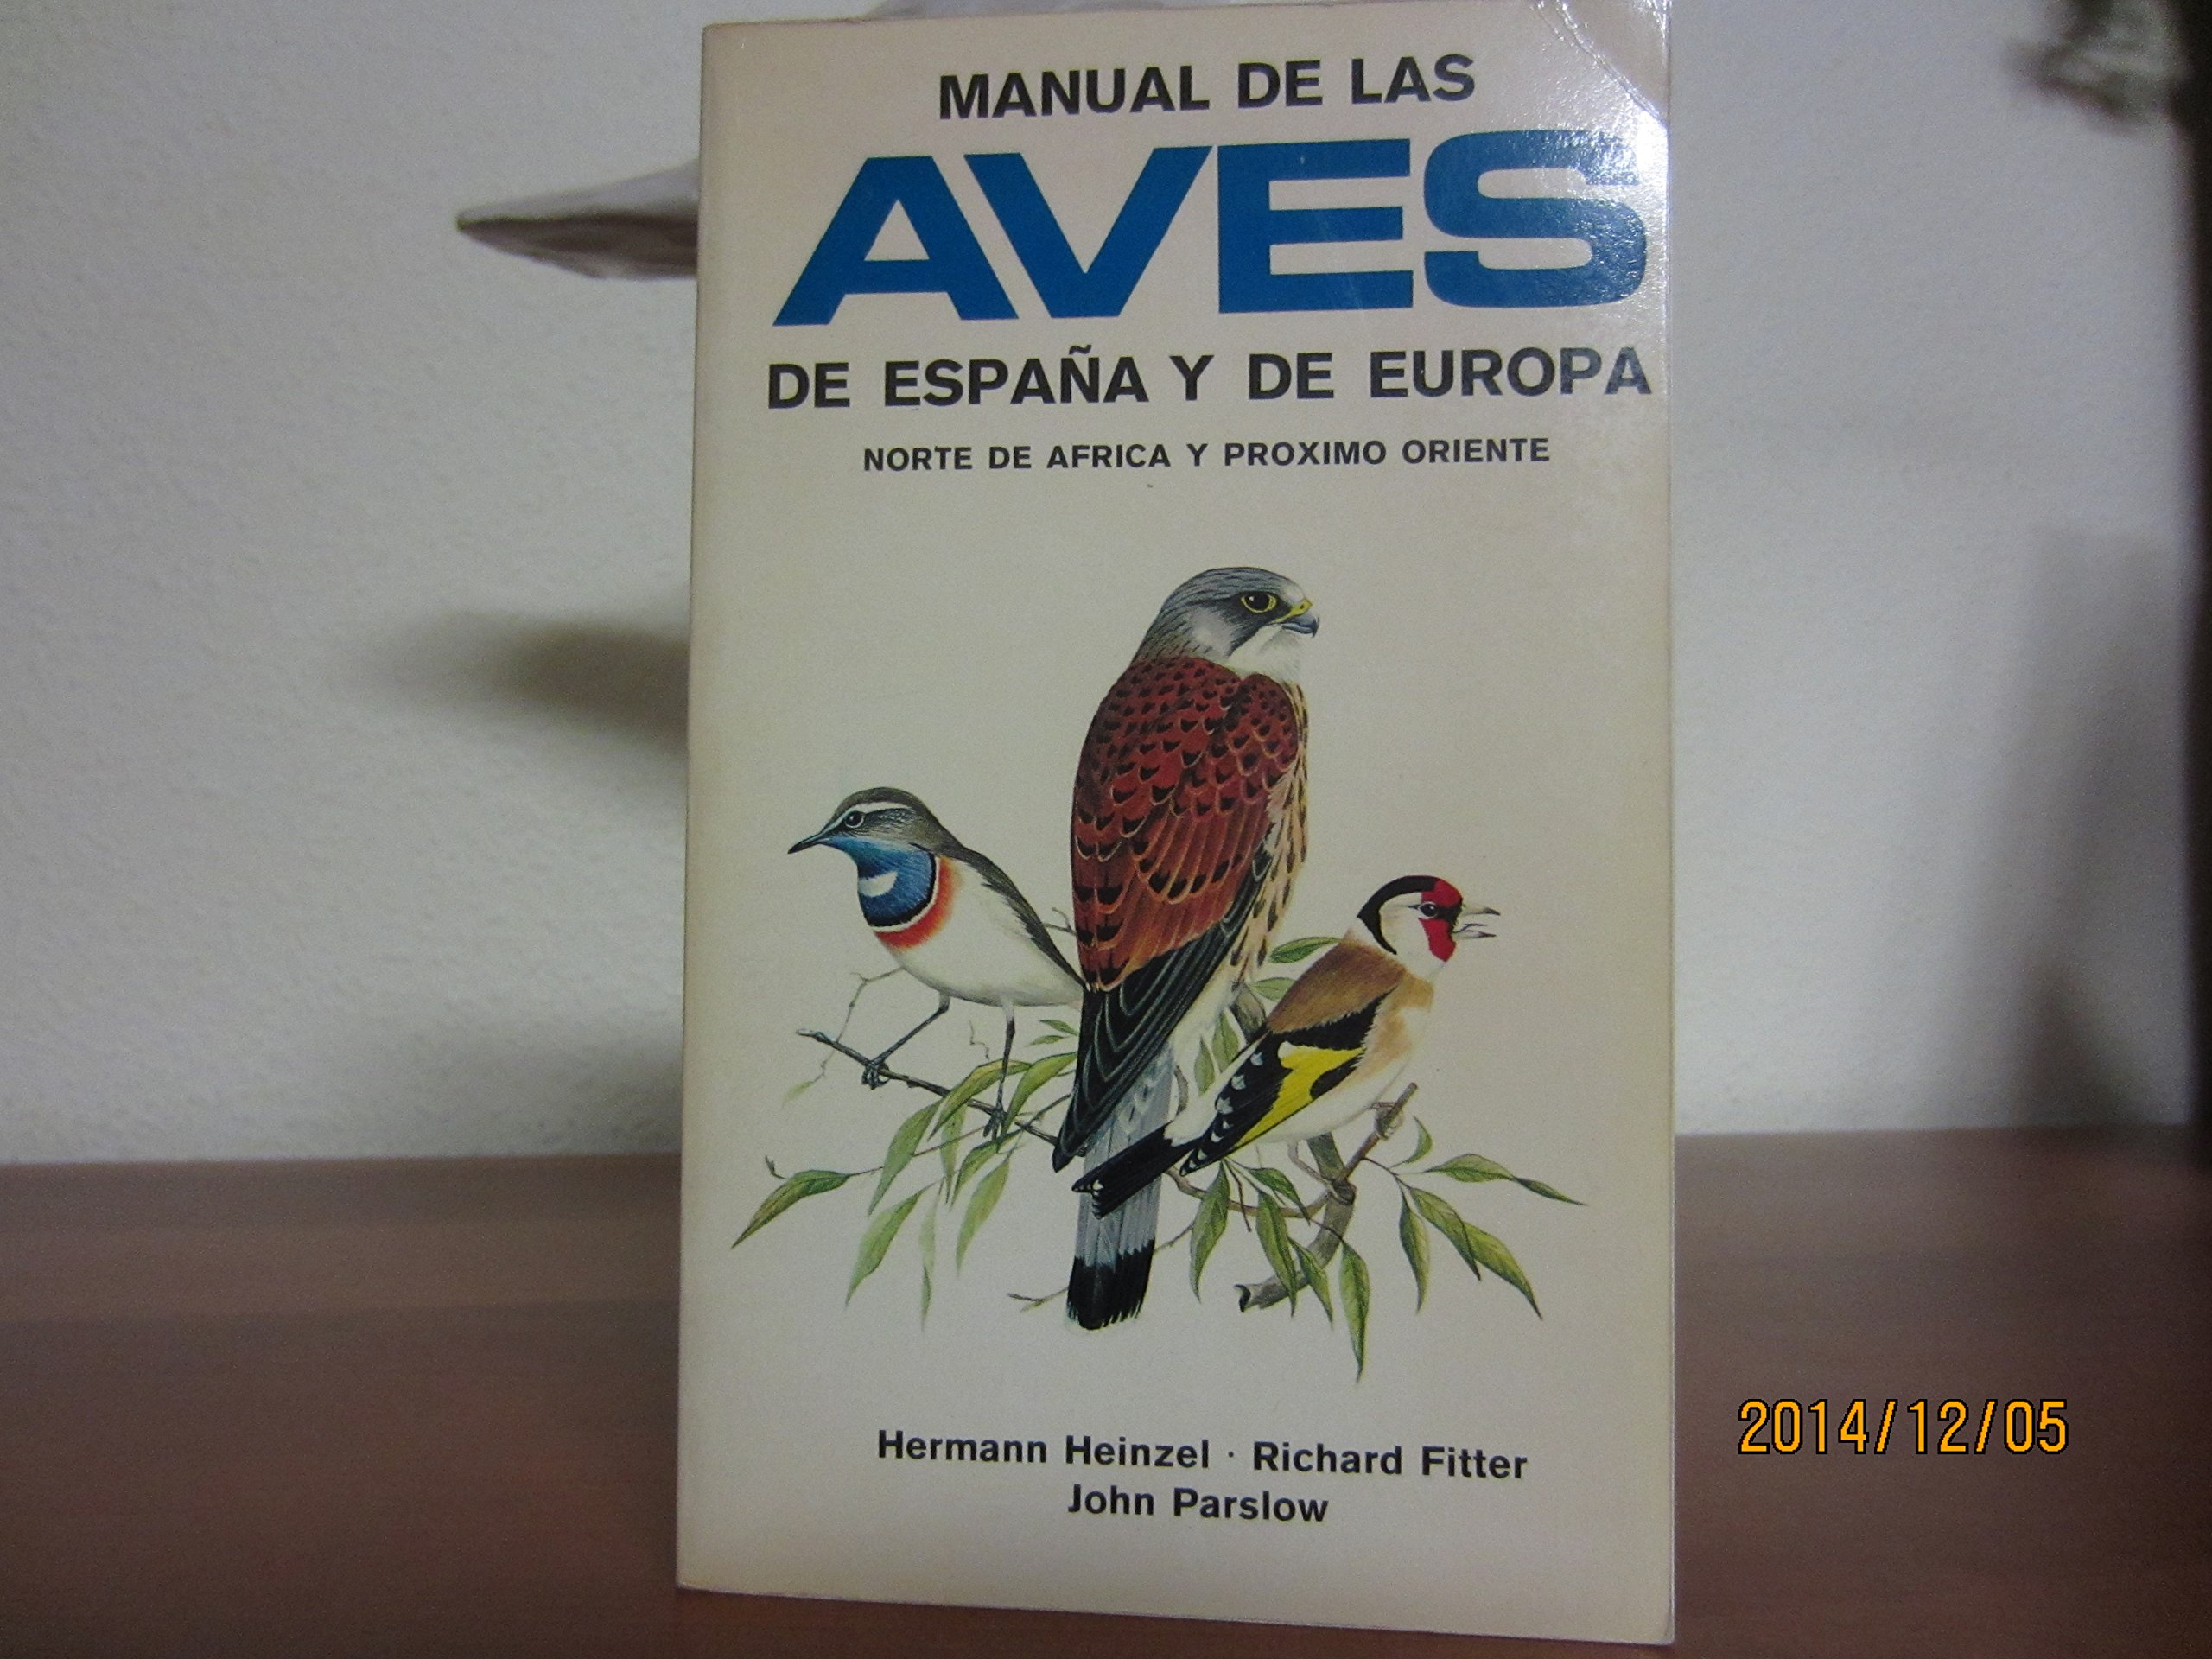 MANUAL DE LAS AVES DE ESPAÑA: THE BIRDS OF BRITAIN GUIAS DEL ...